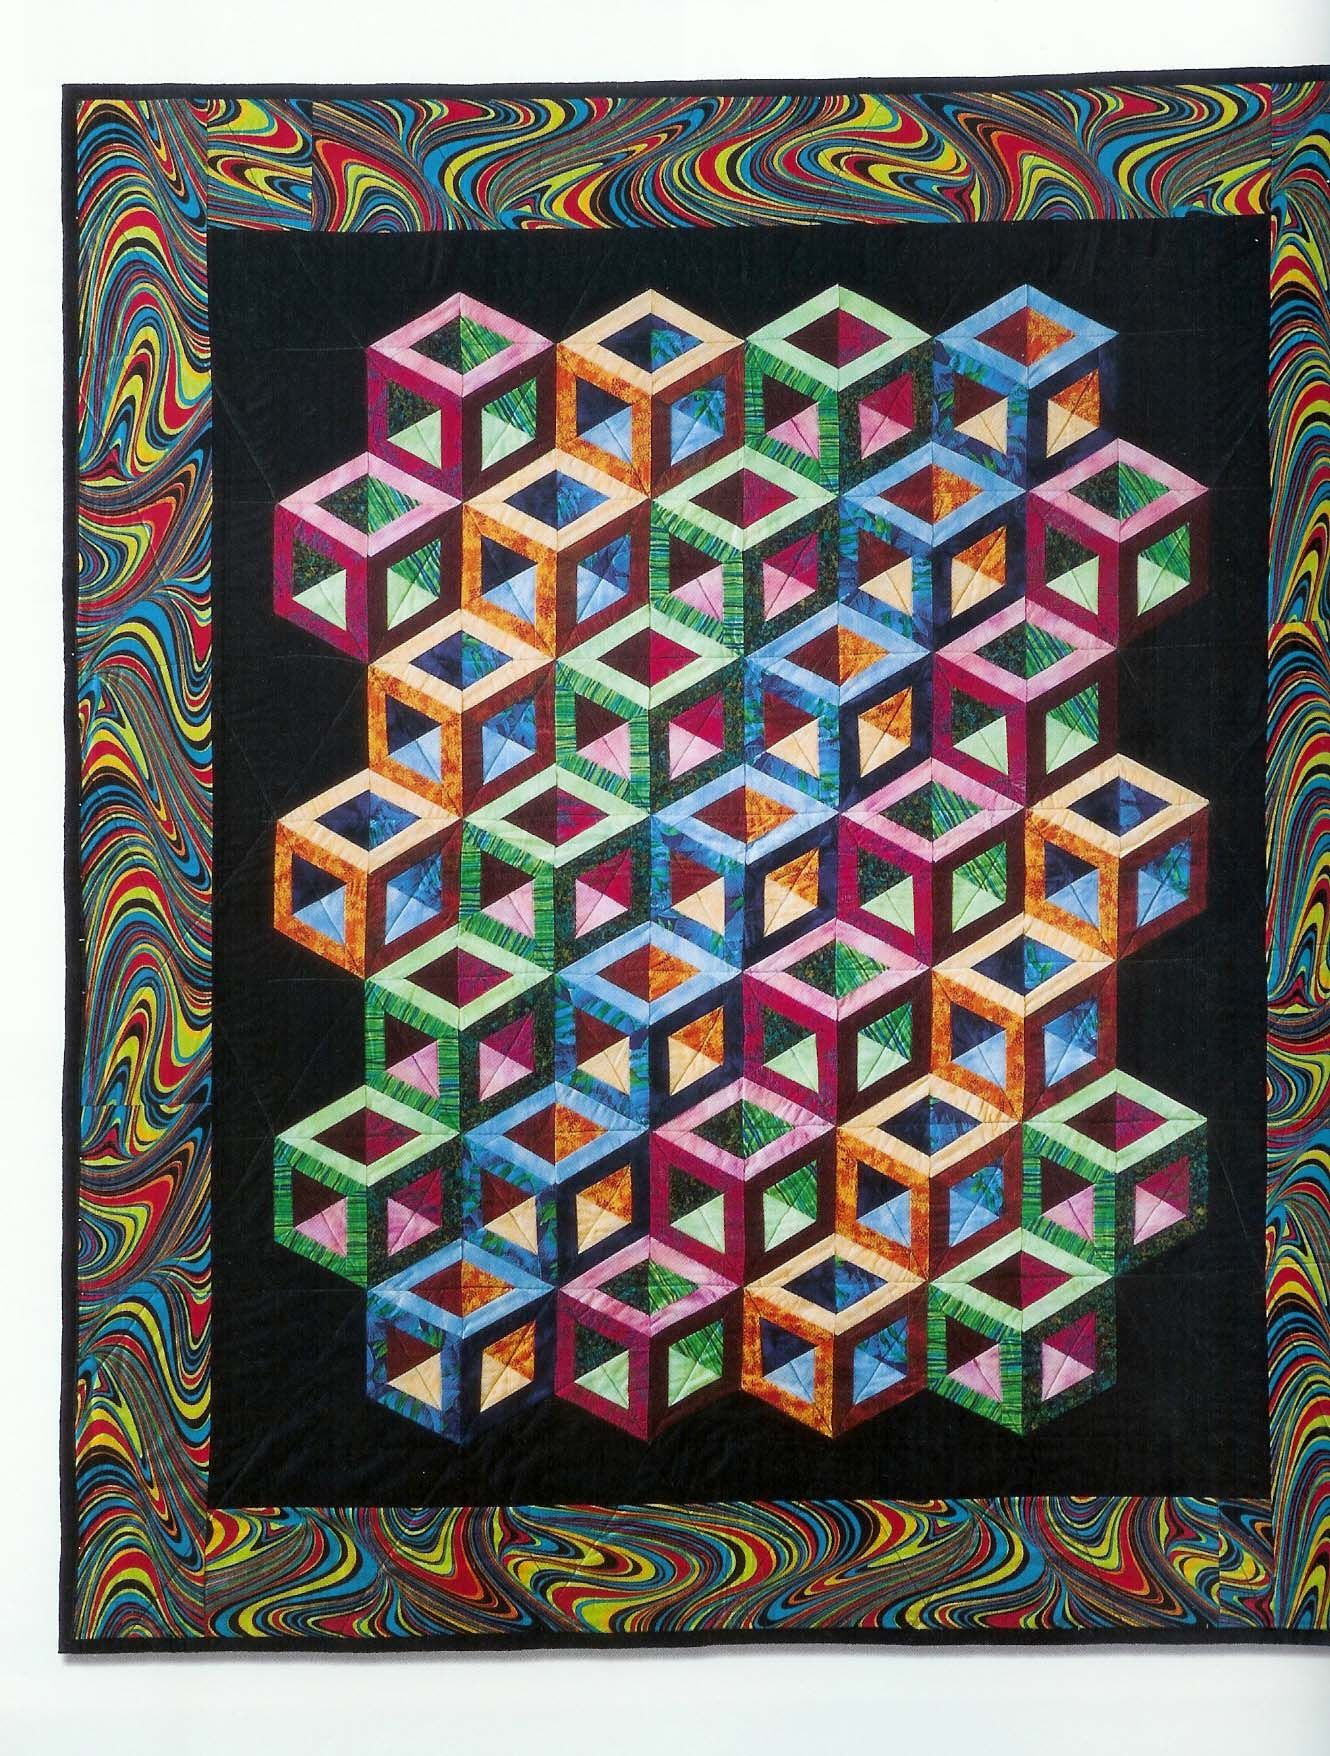 Quilting Patterns Tumbling Blocks : #Tumbling-Blocks-Quilt Quilting Pinterest Tumbling blocks, Block quilt and Patterns